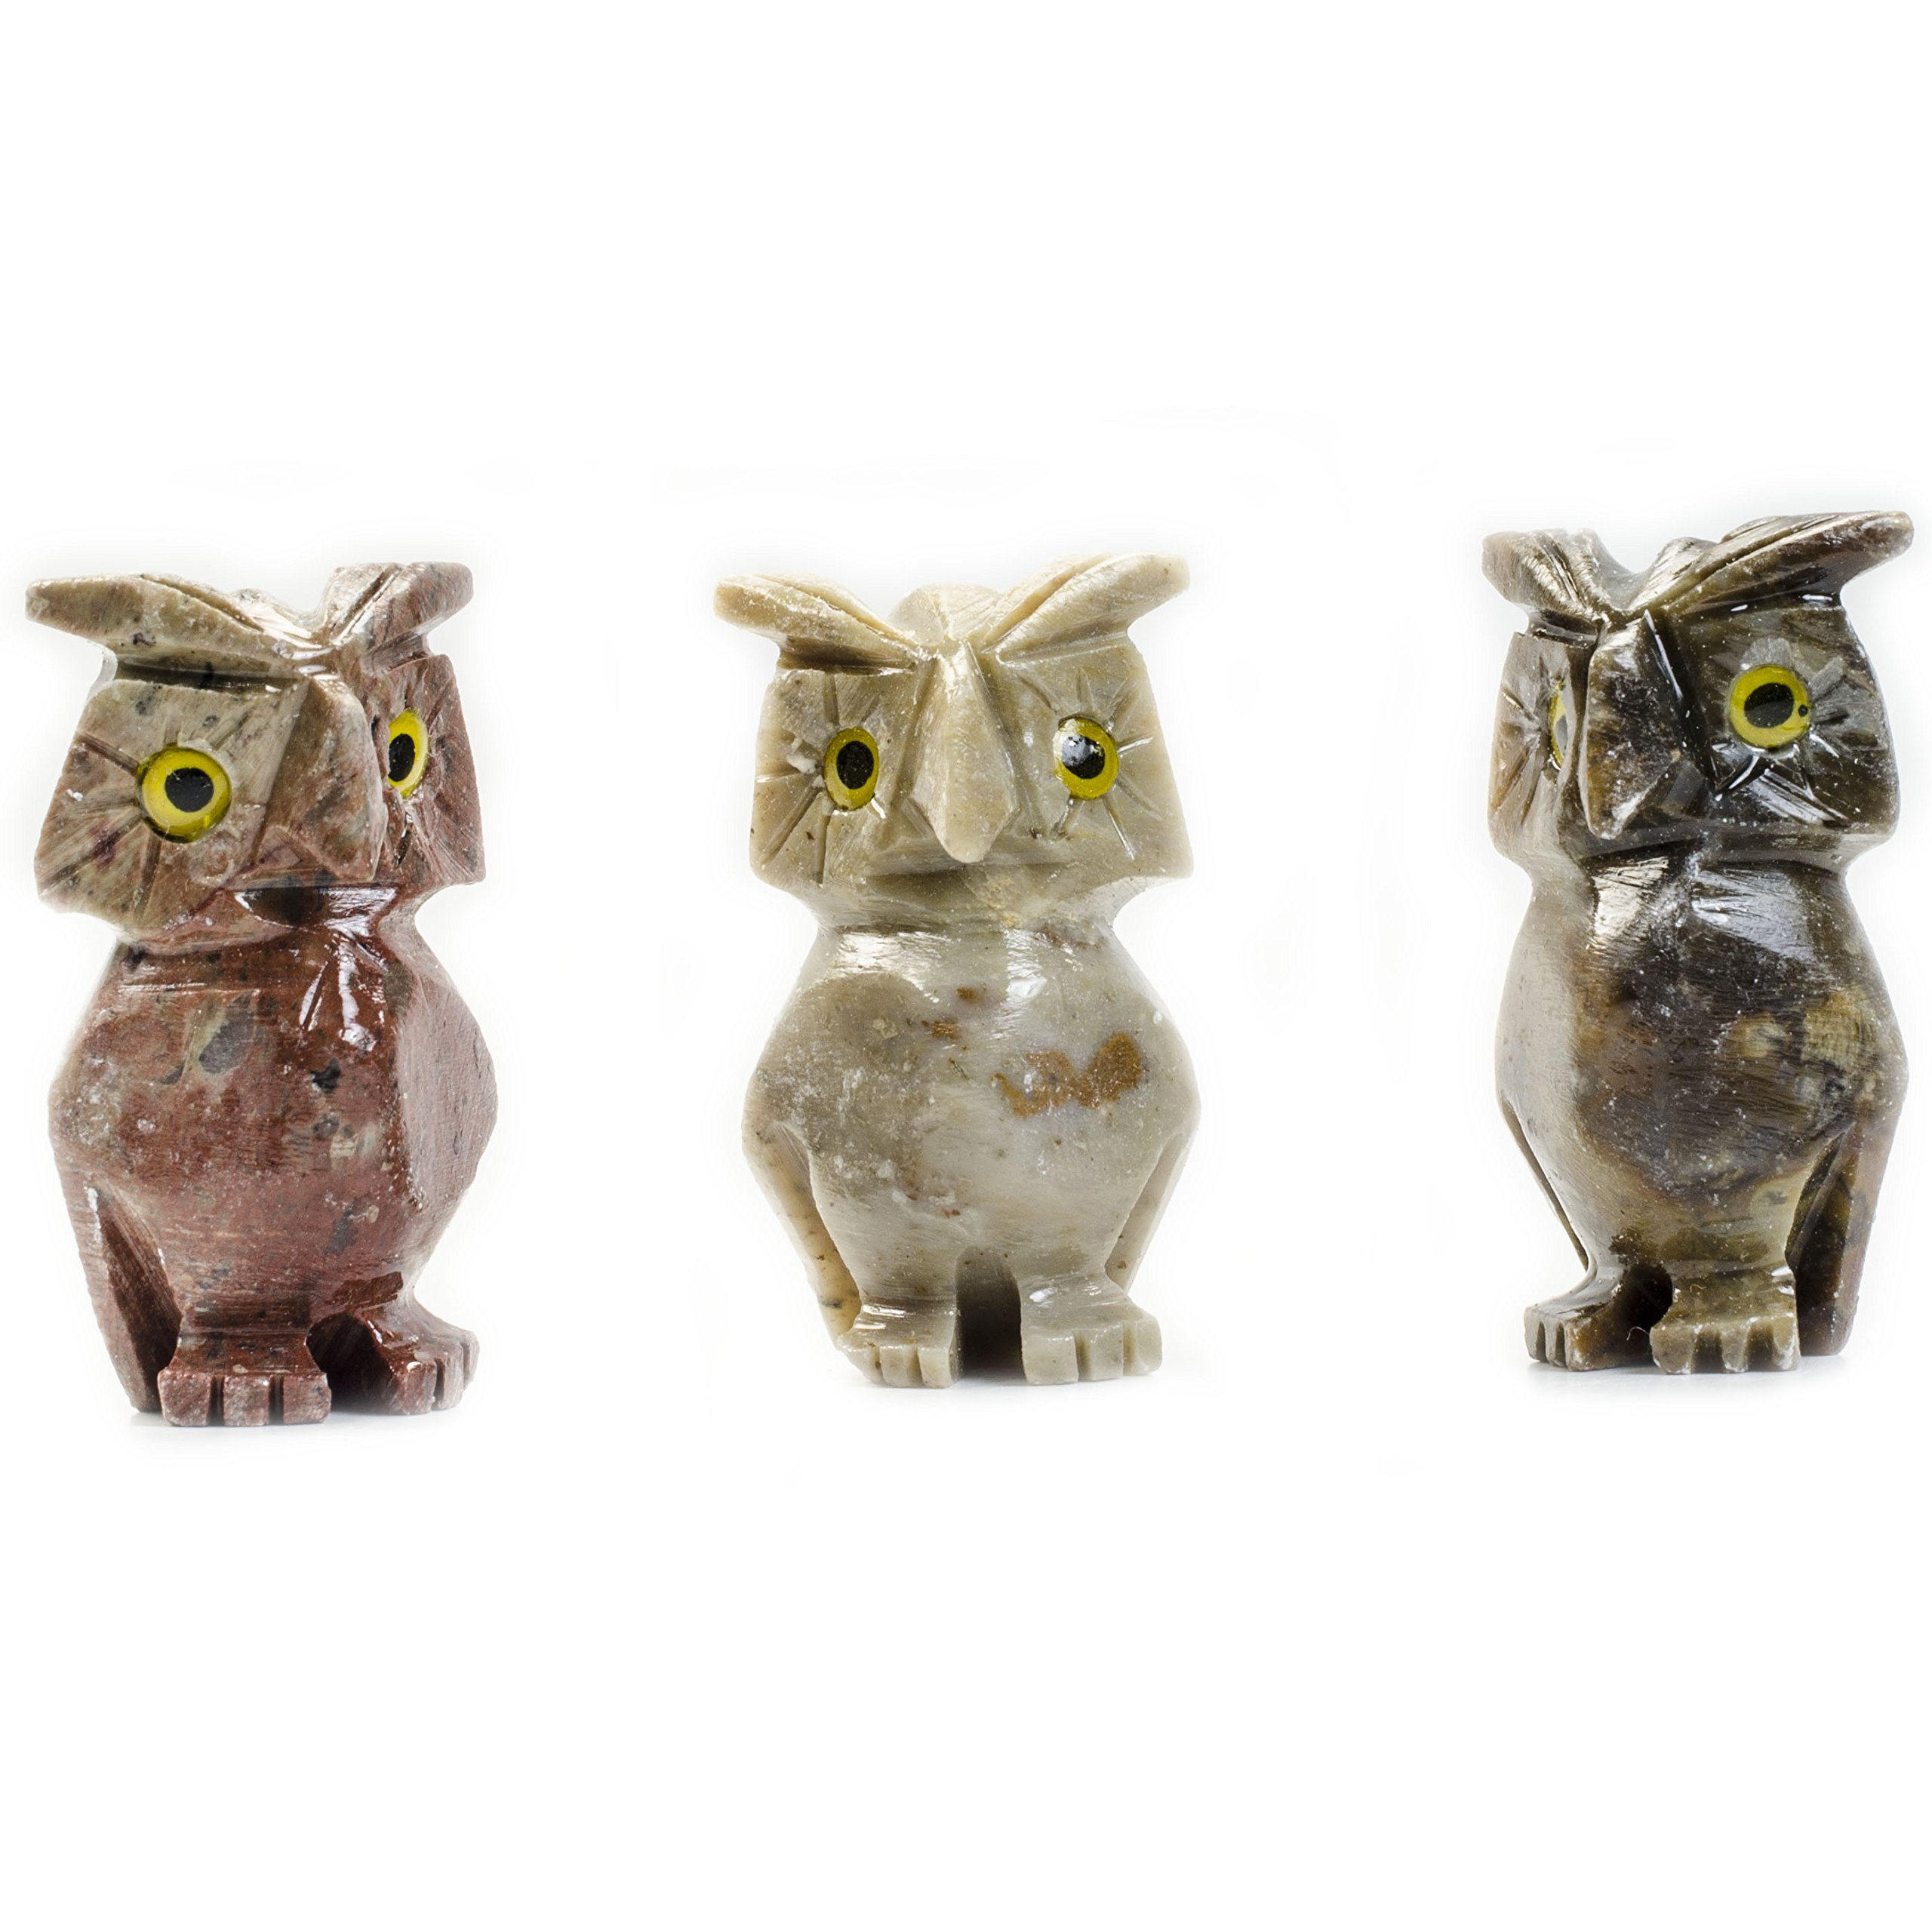 Digging Dolls : 30 pcs Artisan Owl Collectable Animal Figurine - Party Favors, Stocking Stuffers, Gifts, Collecting and More!